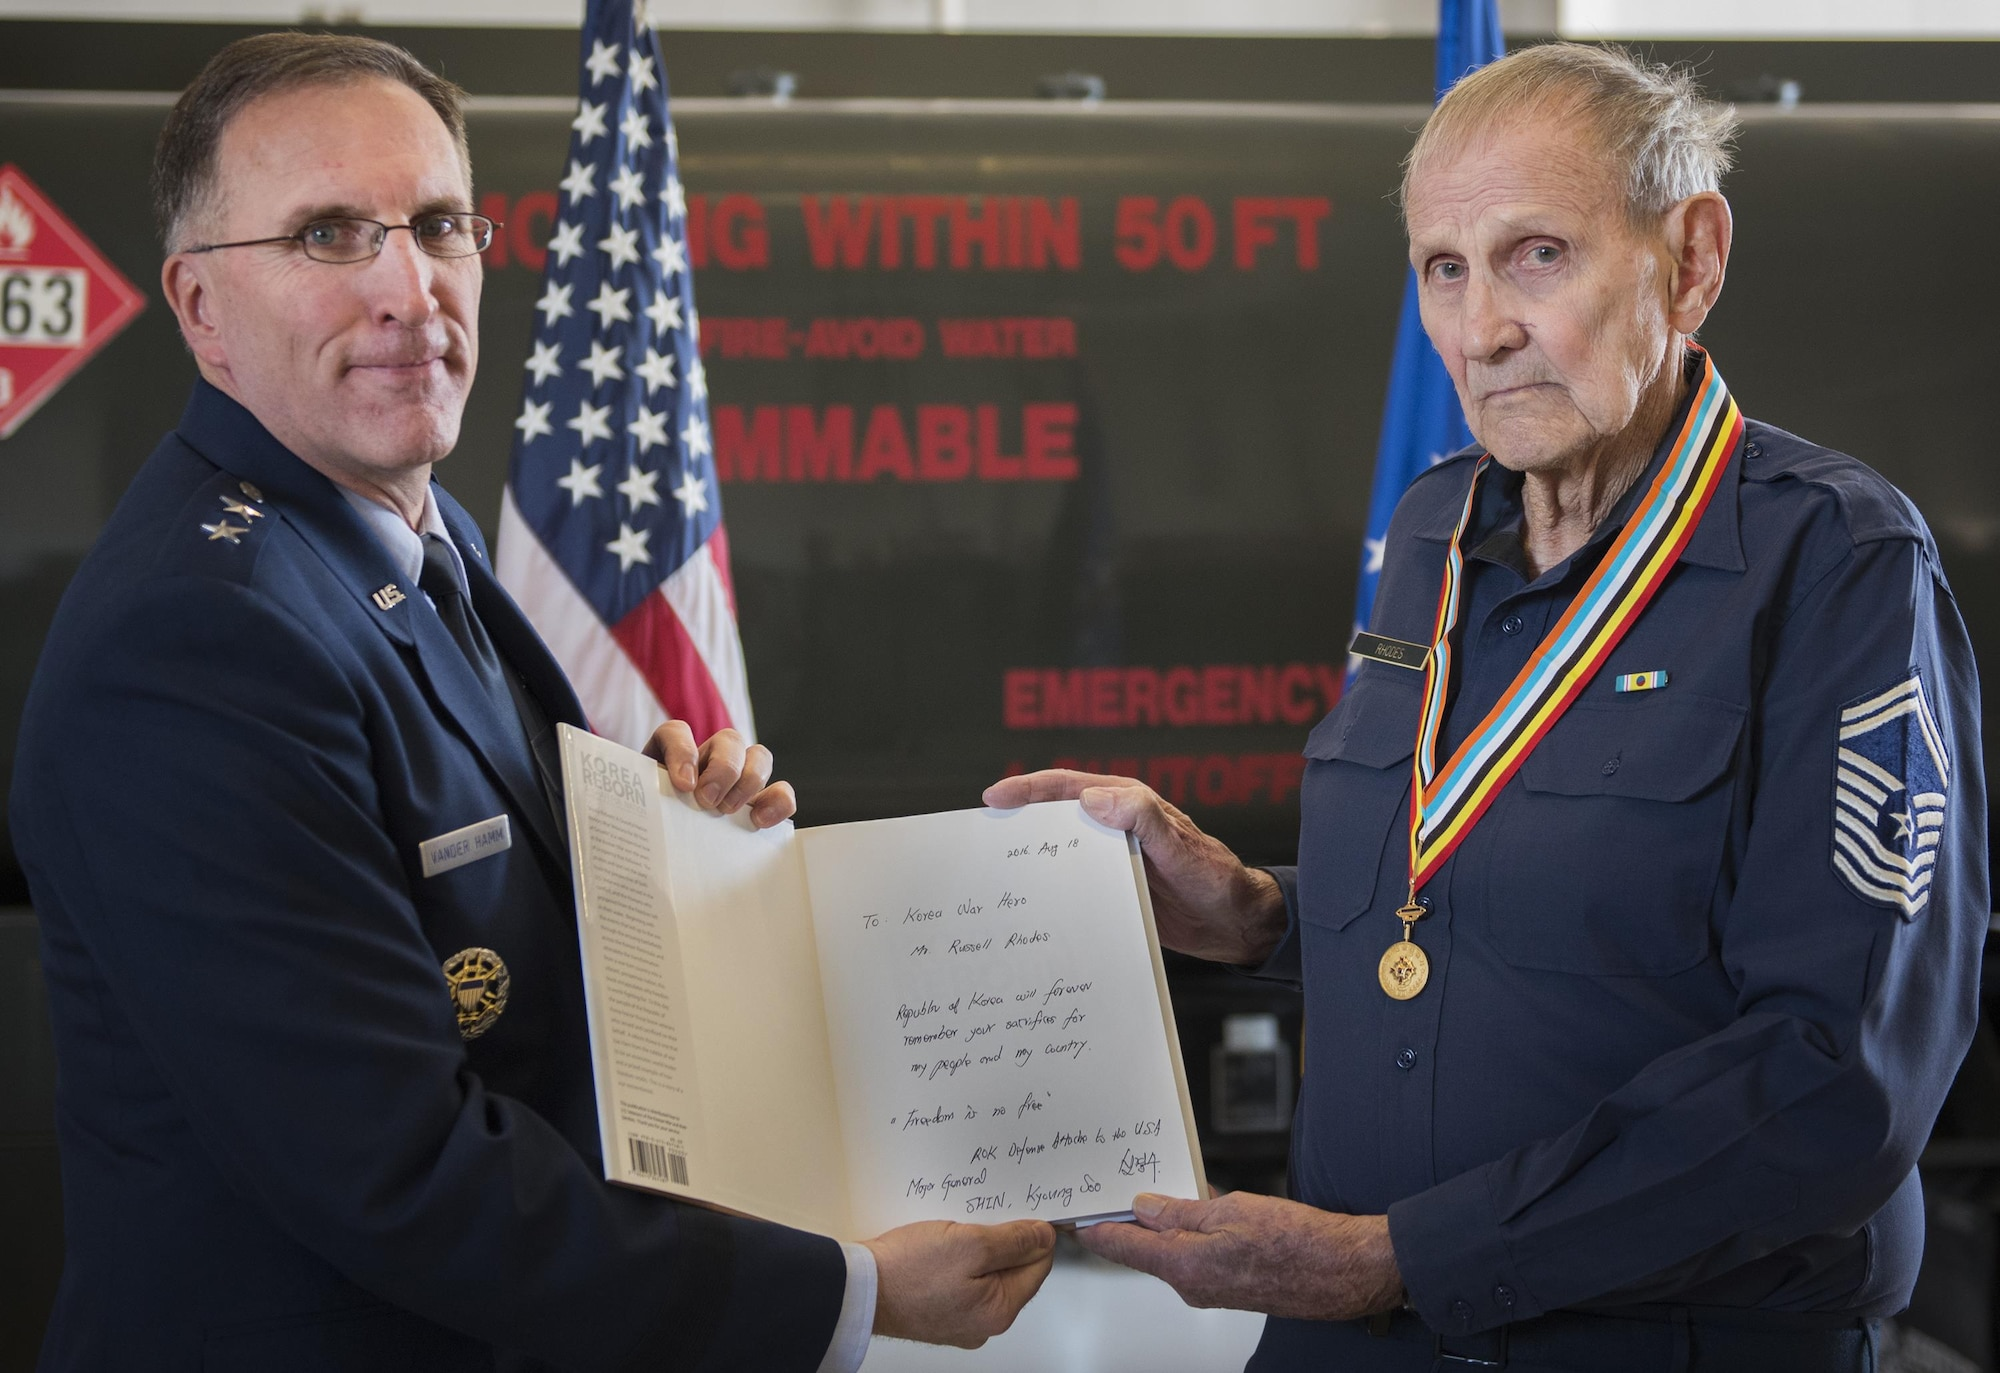 Maj. Gen. Scott Vander Hamm, the Air Force assistant deputy chief of staff of operations, holds a signed book with his uncle, retired Chief Master Sgt. Russell Rhodes, after presenting him with the Korean Ambassador for Peace Medal during a ceremony held at Eglin Air Force Base, Fla., Nov. 15, 2016. The 85-year-old Rhodes requested the medal ceremony be held at the base's fuels flight, where Rhodes was stationed during his Air Force career as a fuel truck driver. (U.S. Air Force photo/Samuel King Jr.)